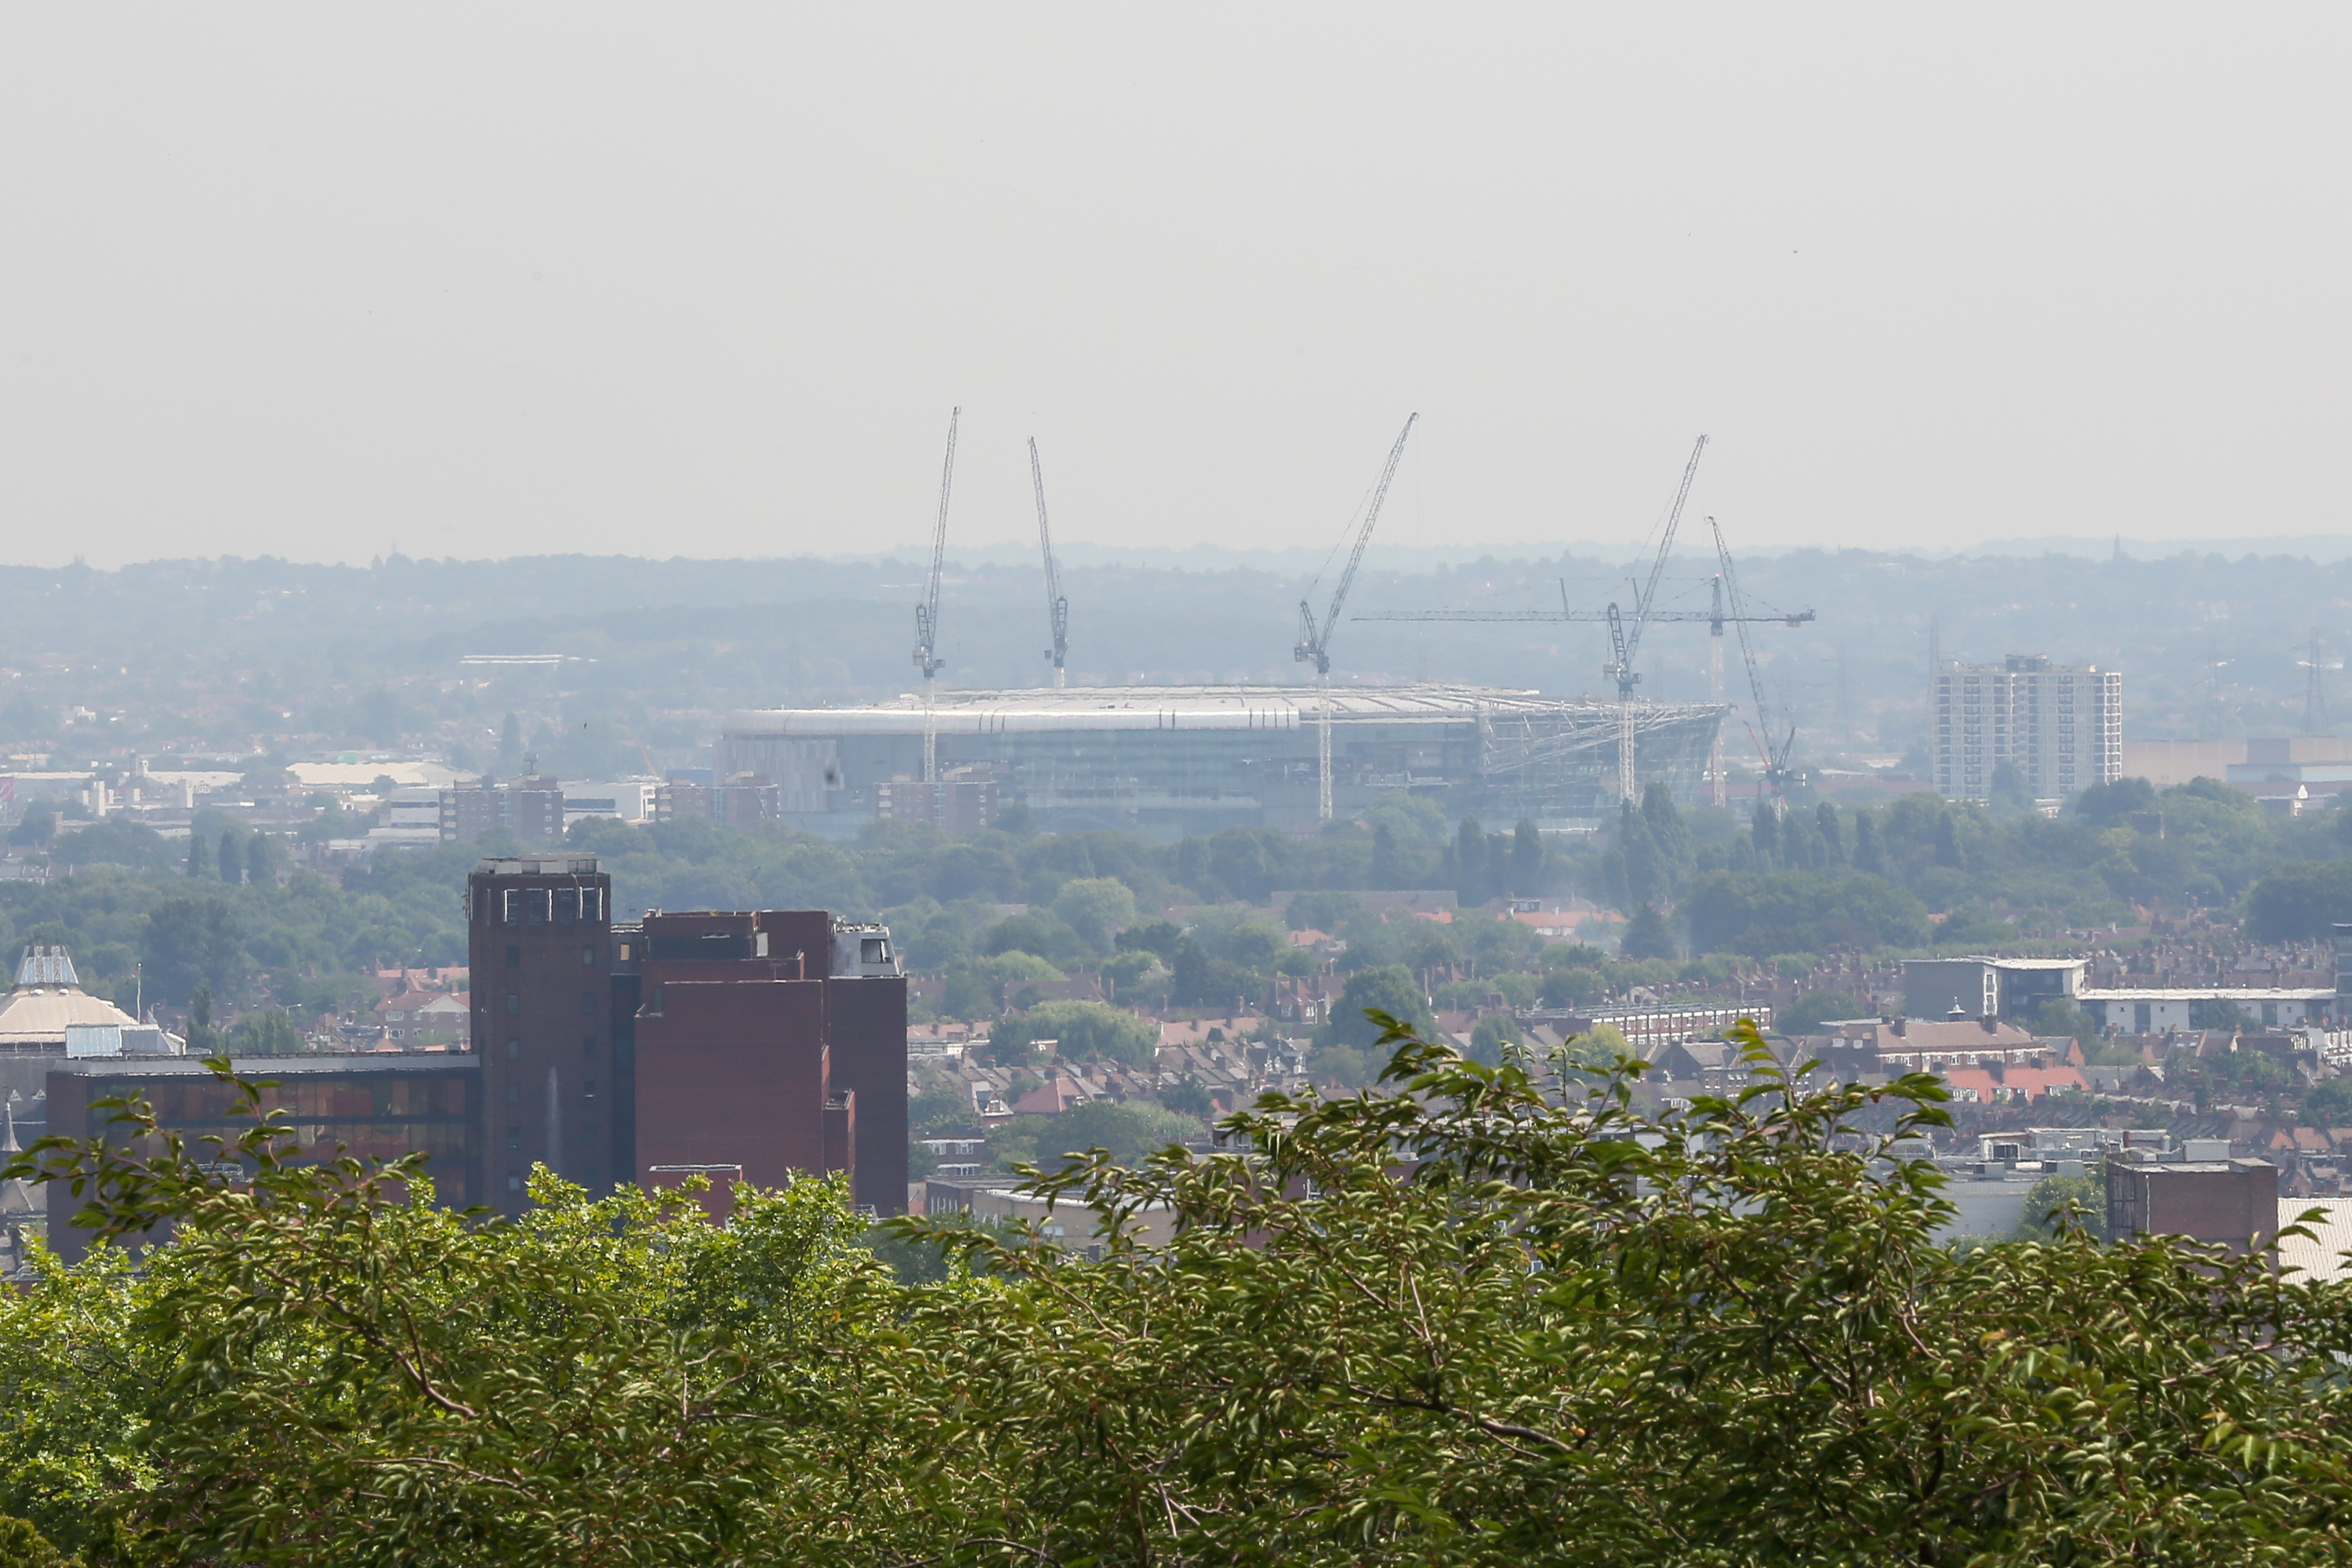 Heatwave triggers high level of pollution